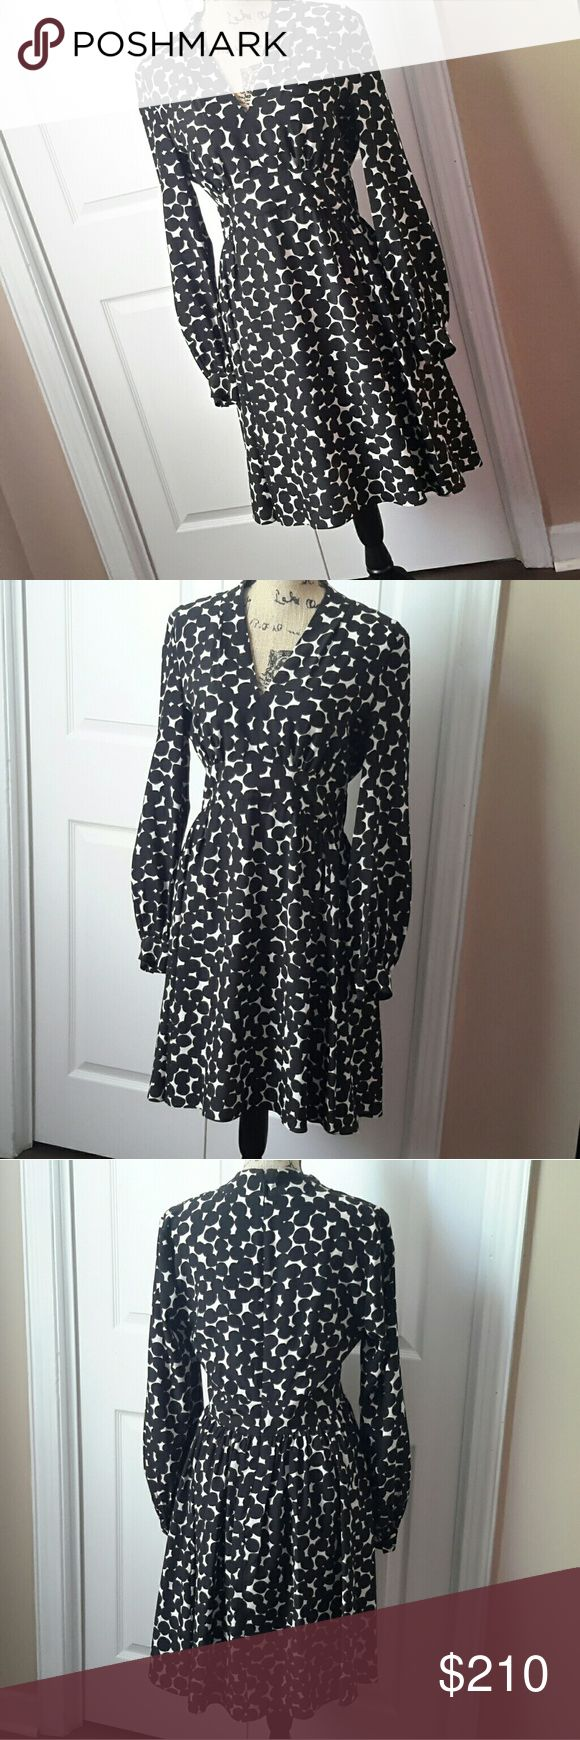 """Kate Spade Blot Dot V-neck Dress - NWT Dress to impress!! Gorgeous & flattering details: deep v-neckline, elegant polka-dotted print, this silk dress is great for any occasion!! Color: French Cream & black 100% silk (lining is 100% Polyester), long sleeves, v-neck  Fit and flare - 37"""" long from highest shoulder point Center back zipper with hook and eye above Size 8 measurements (from Katespade.com):  Bust: 36.5""""; Natural waist: 29""""; Hip: 39"""" New with tag kate spade Dresses"""